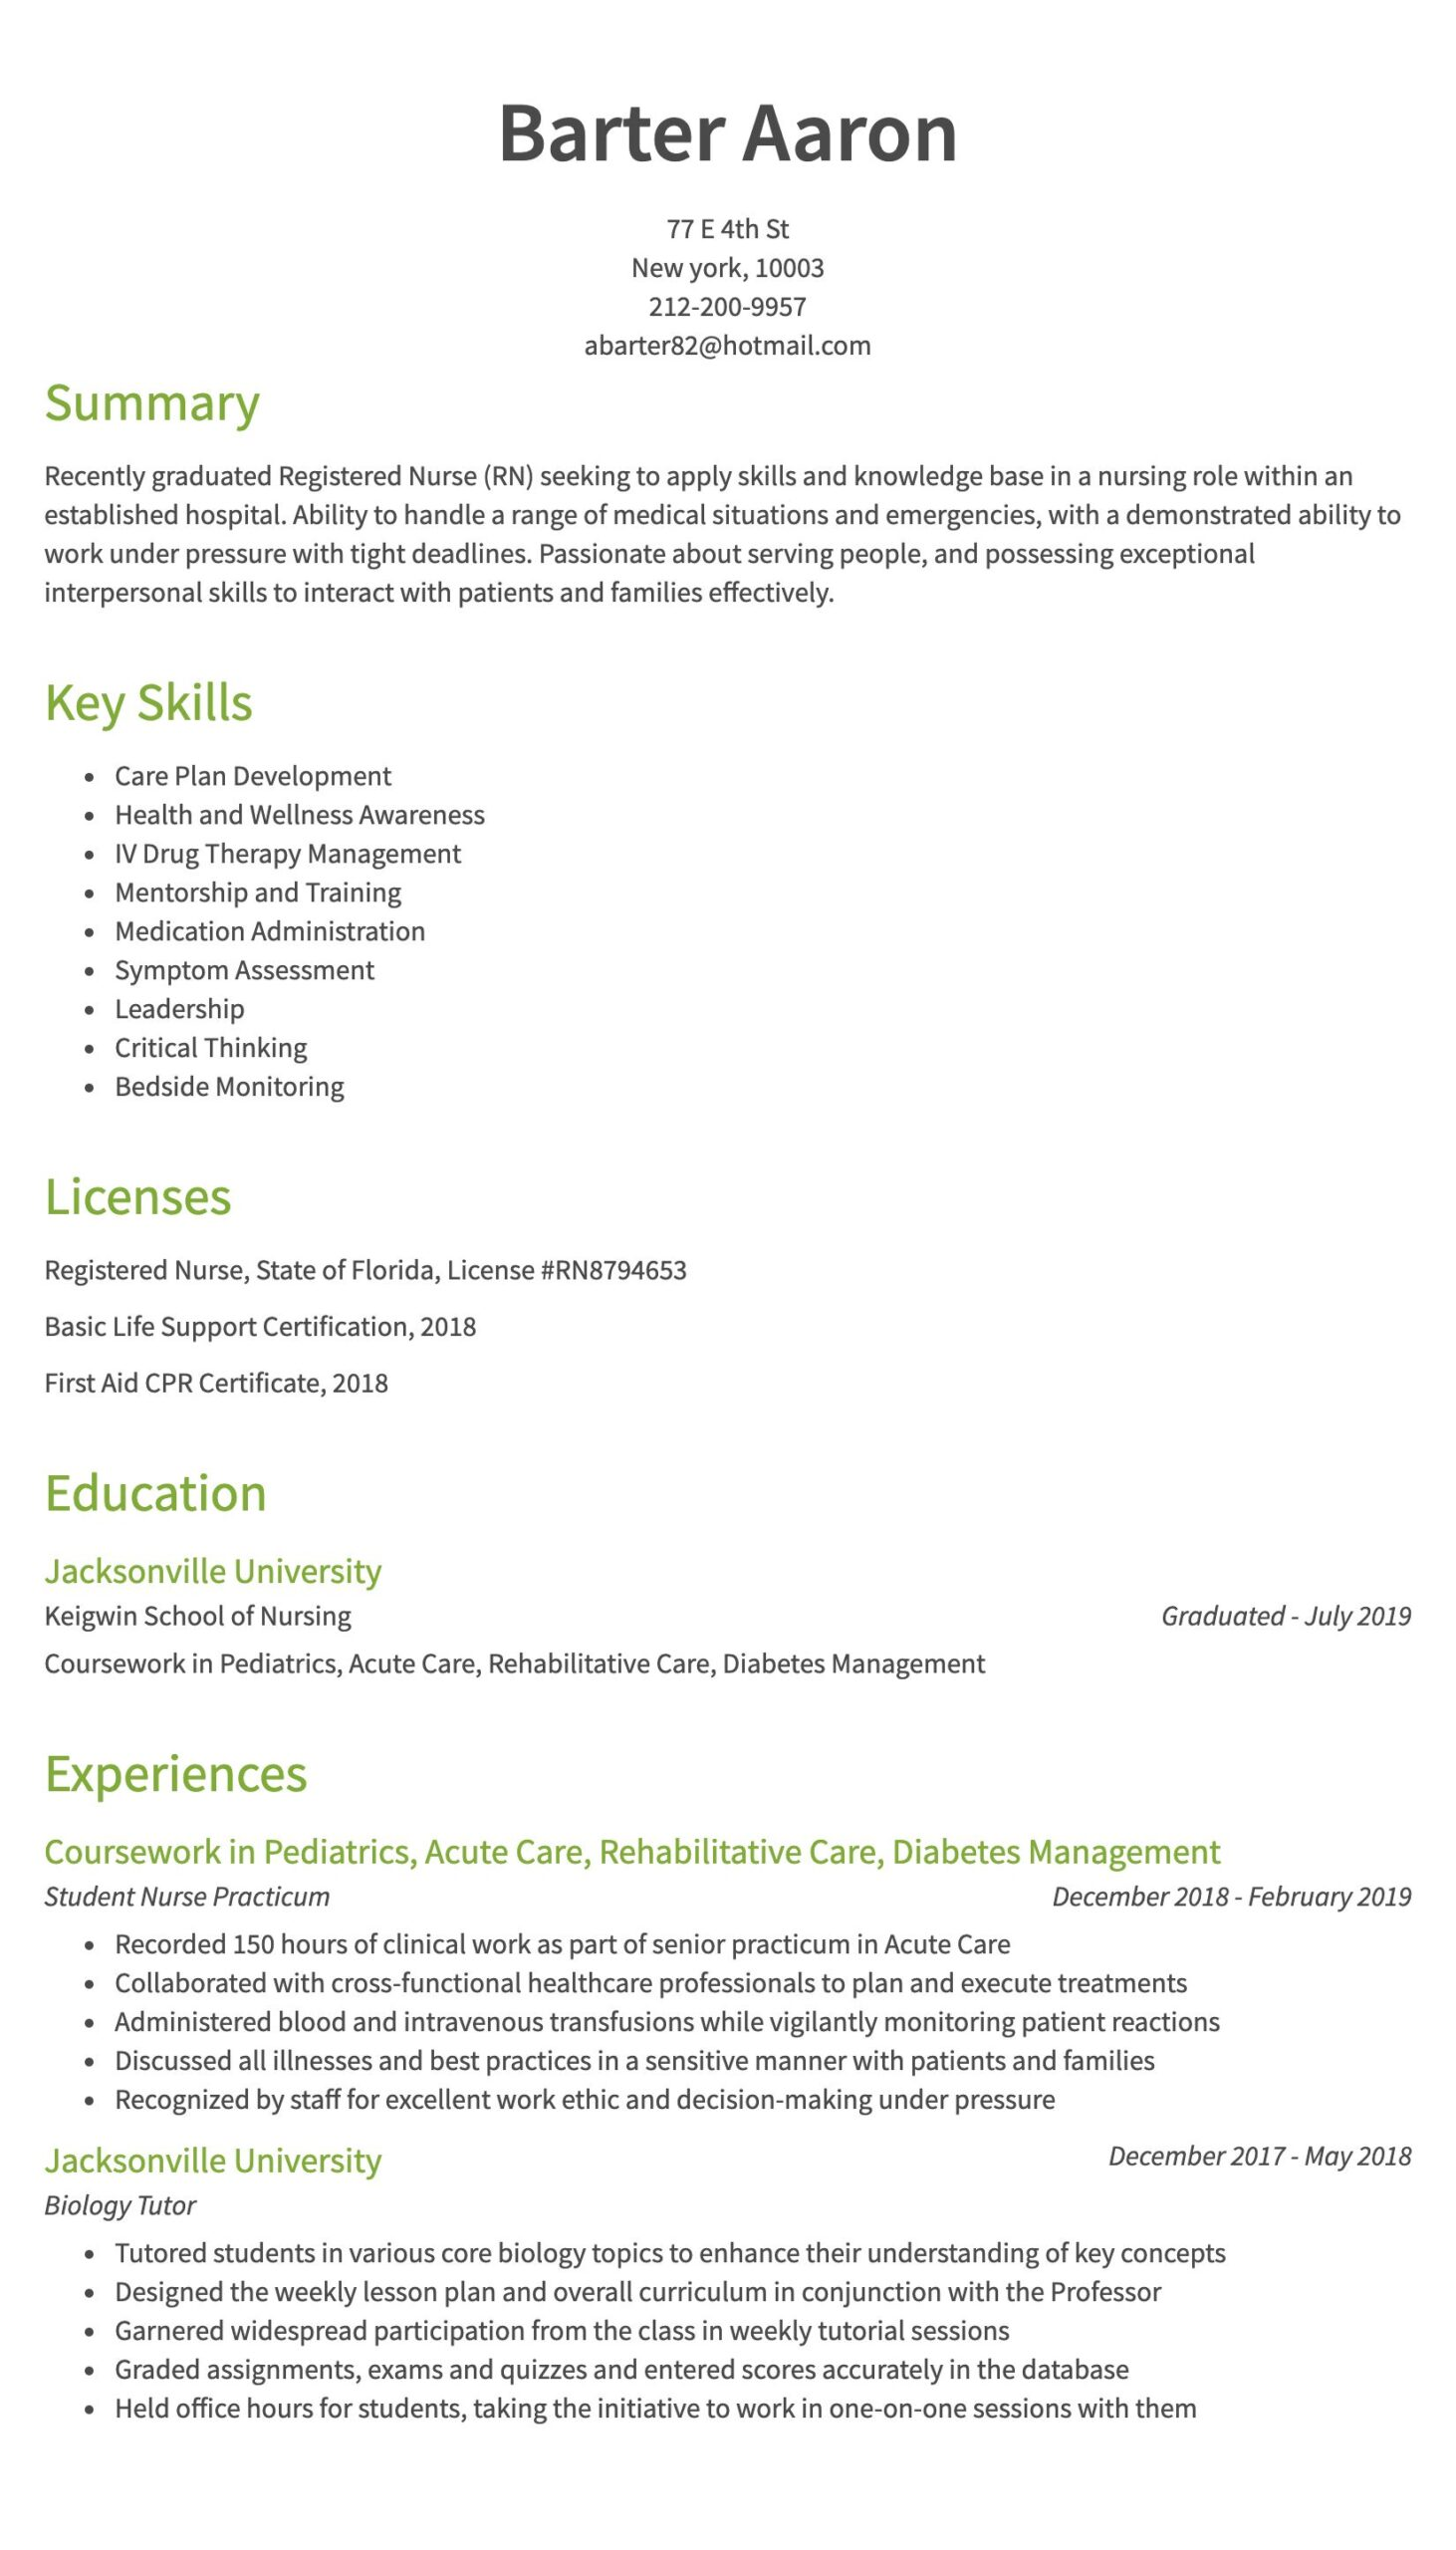 nursing resume examples samples written by rn managers detailed for nurses years of exp Resume Detailed Resume For Nurses